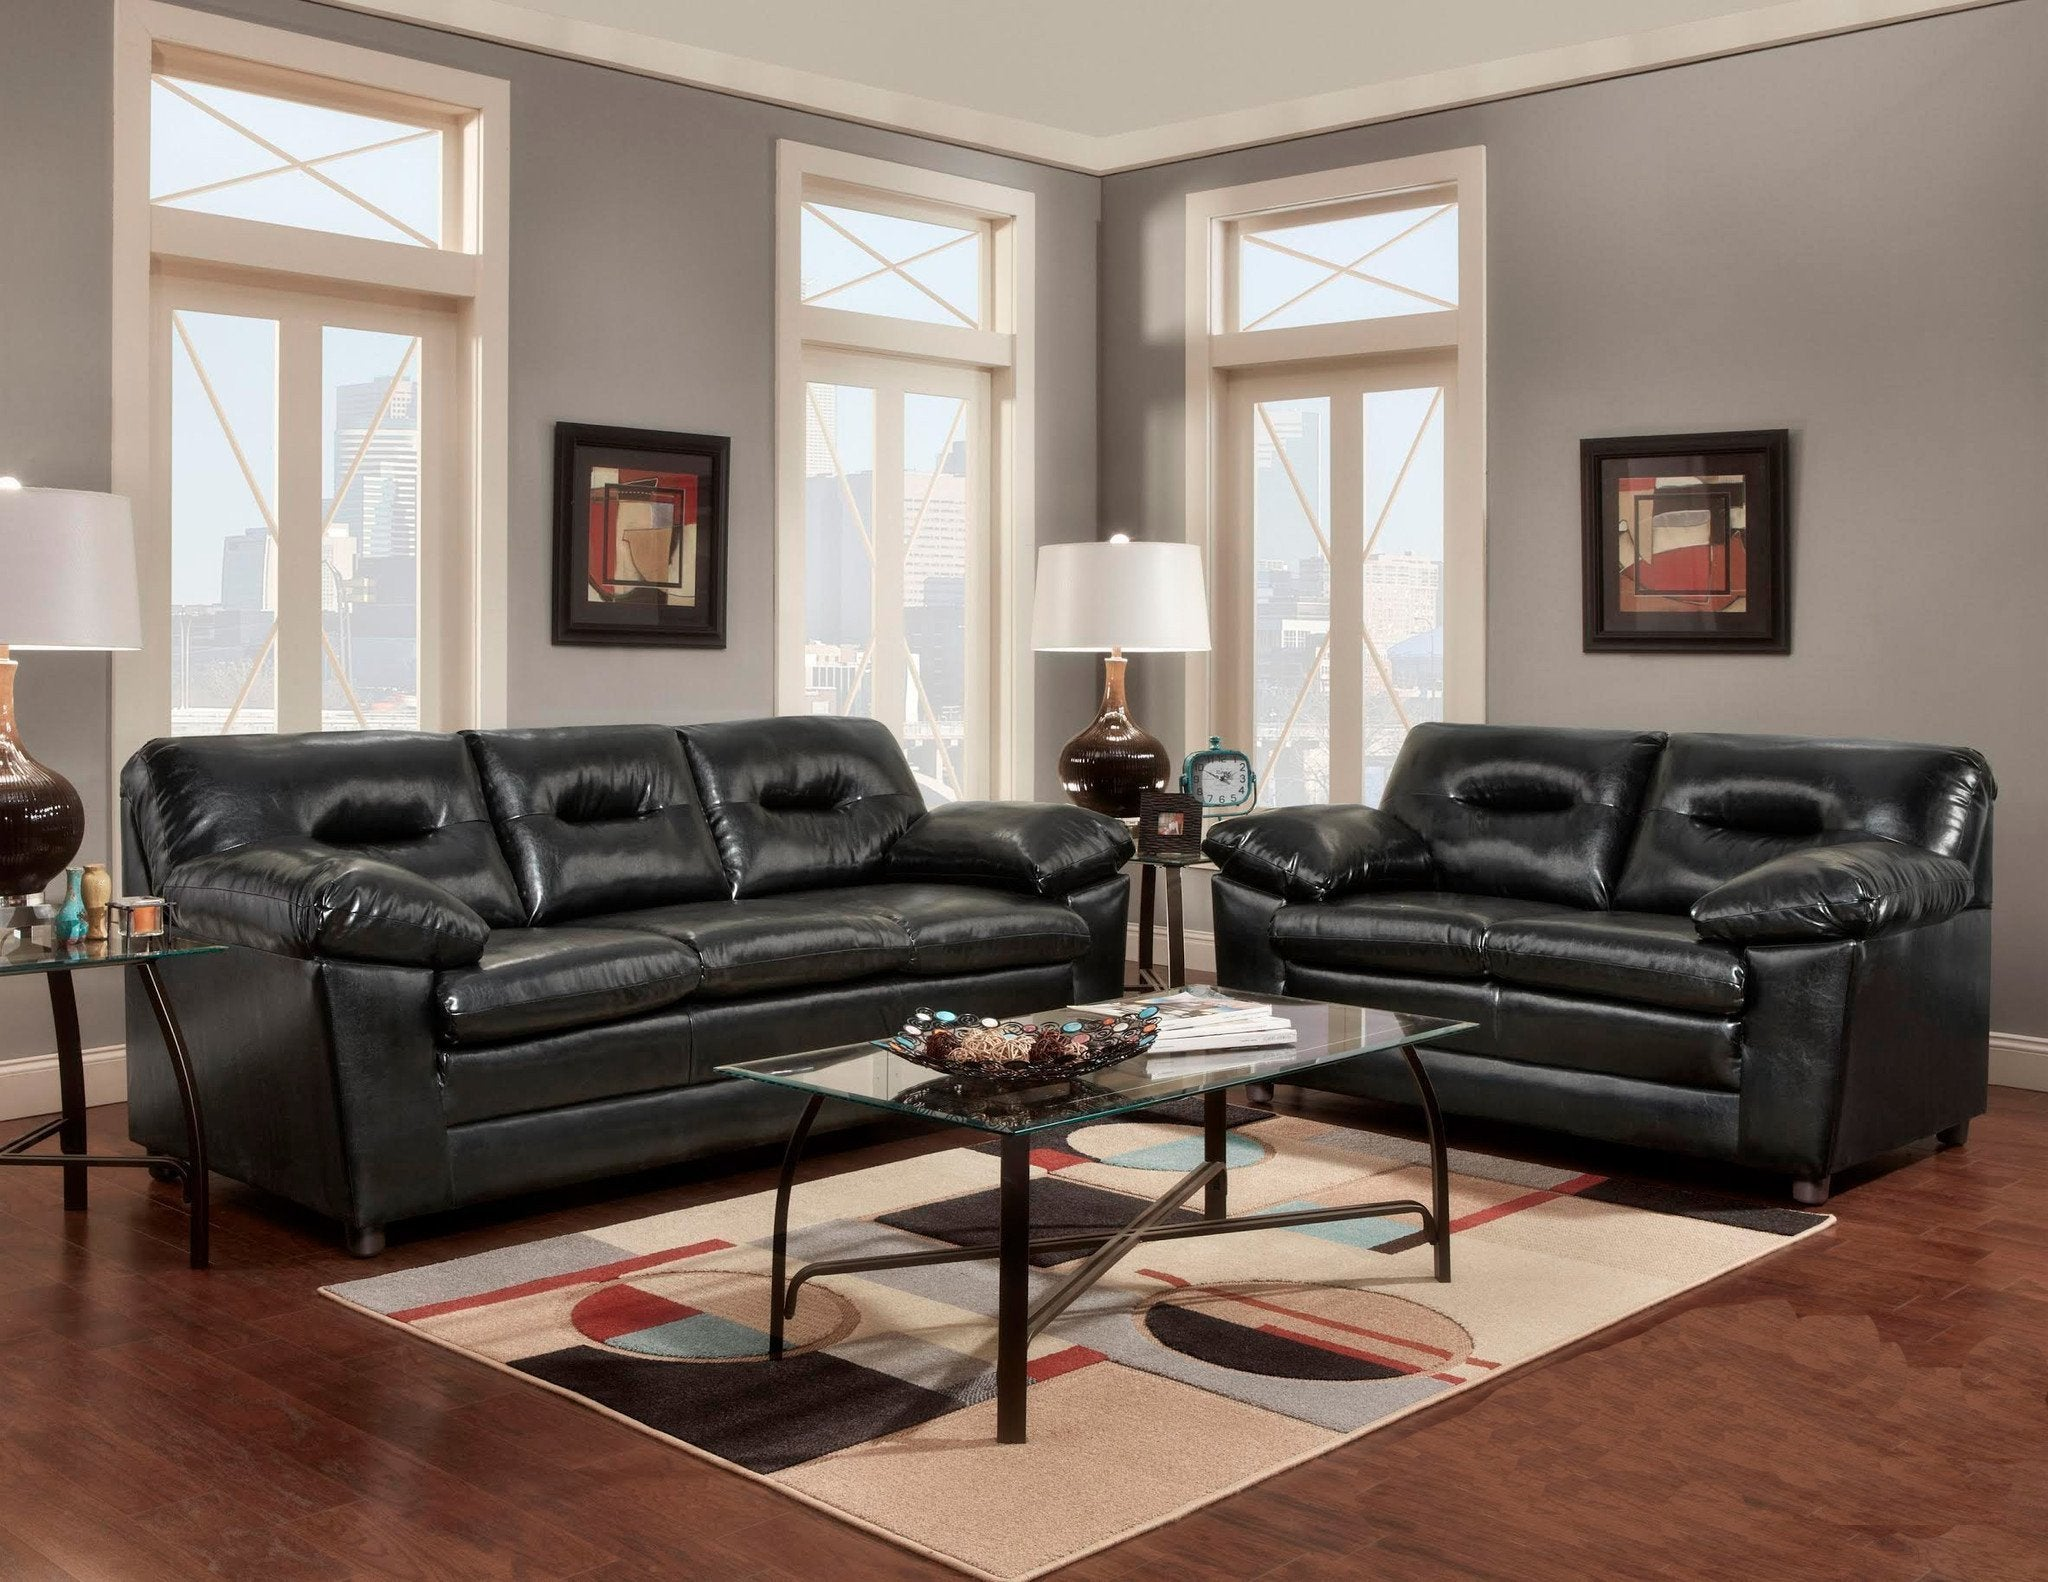 Denver Bonded Leather Sofa U0026 Loveseat   Black   By Washington